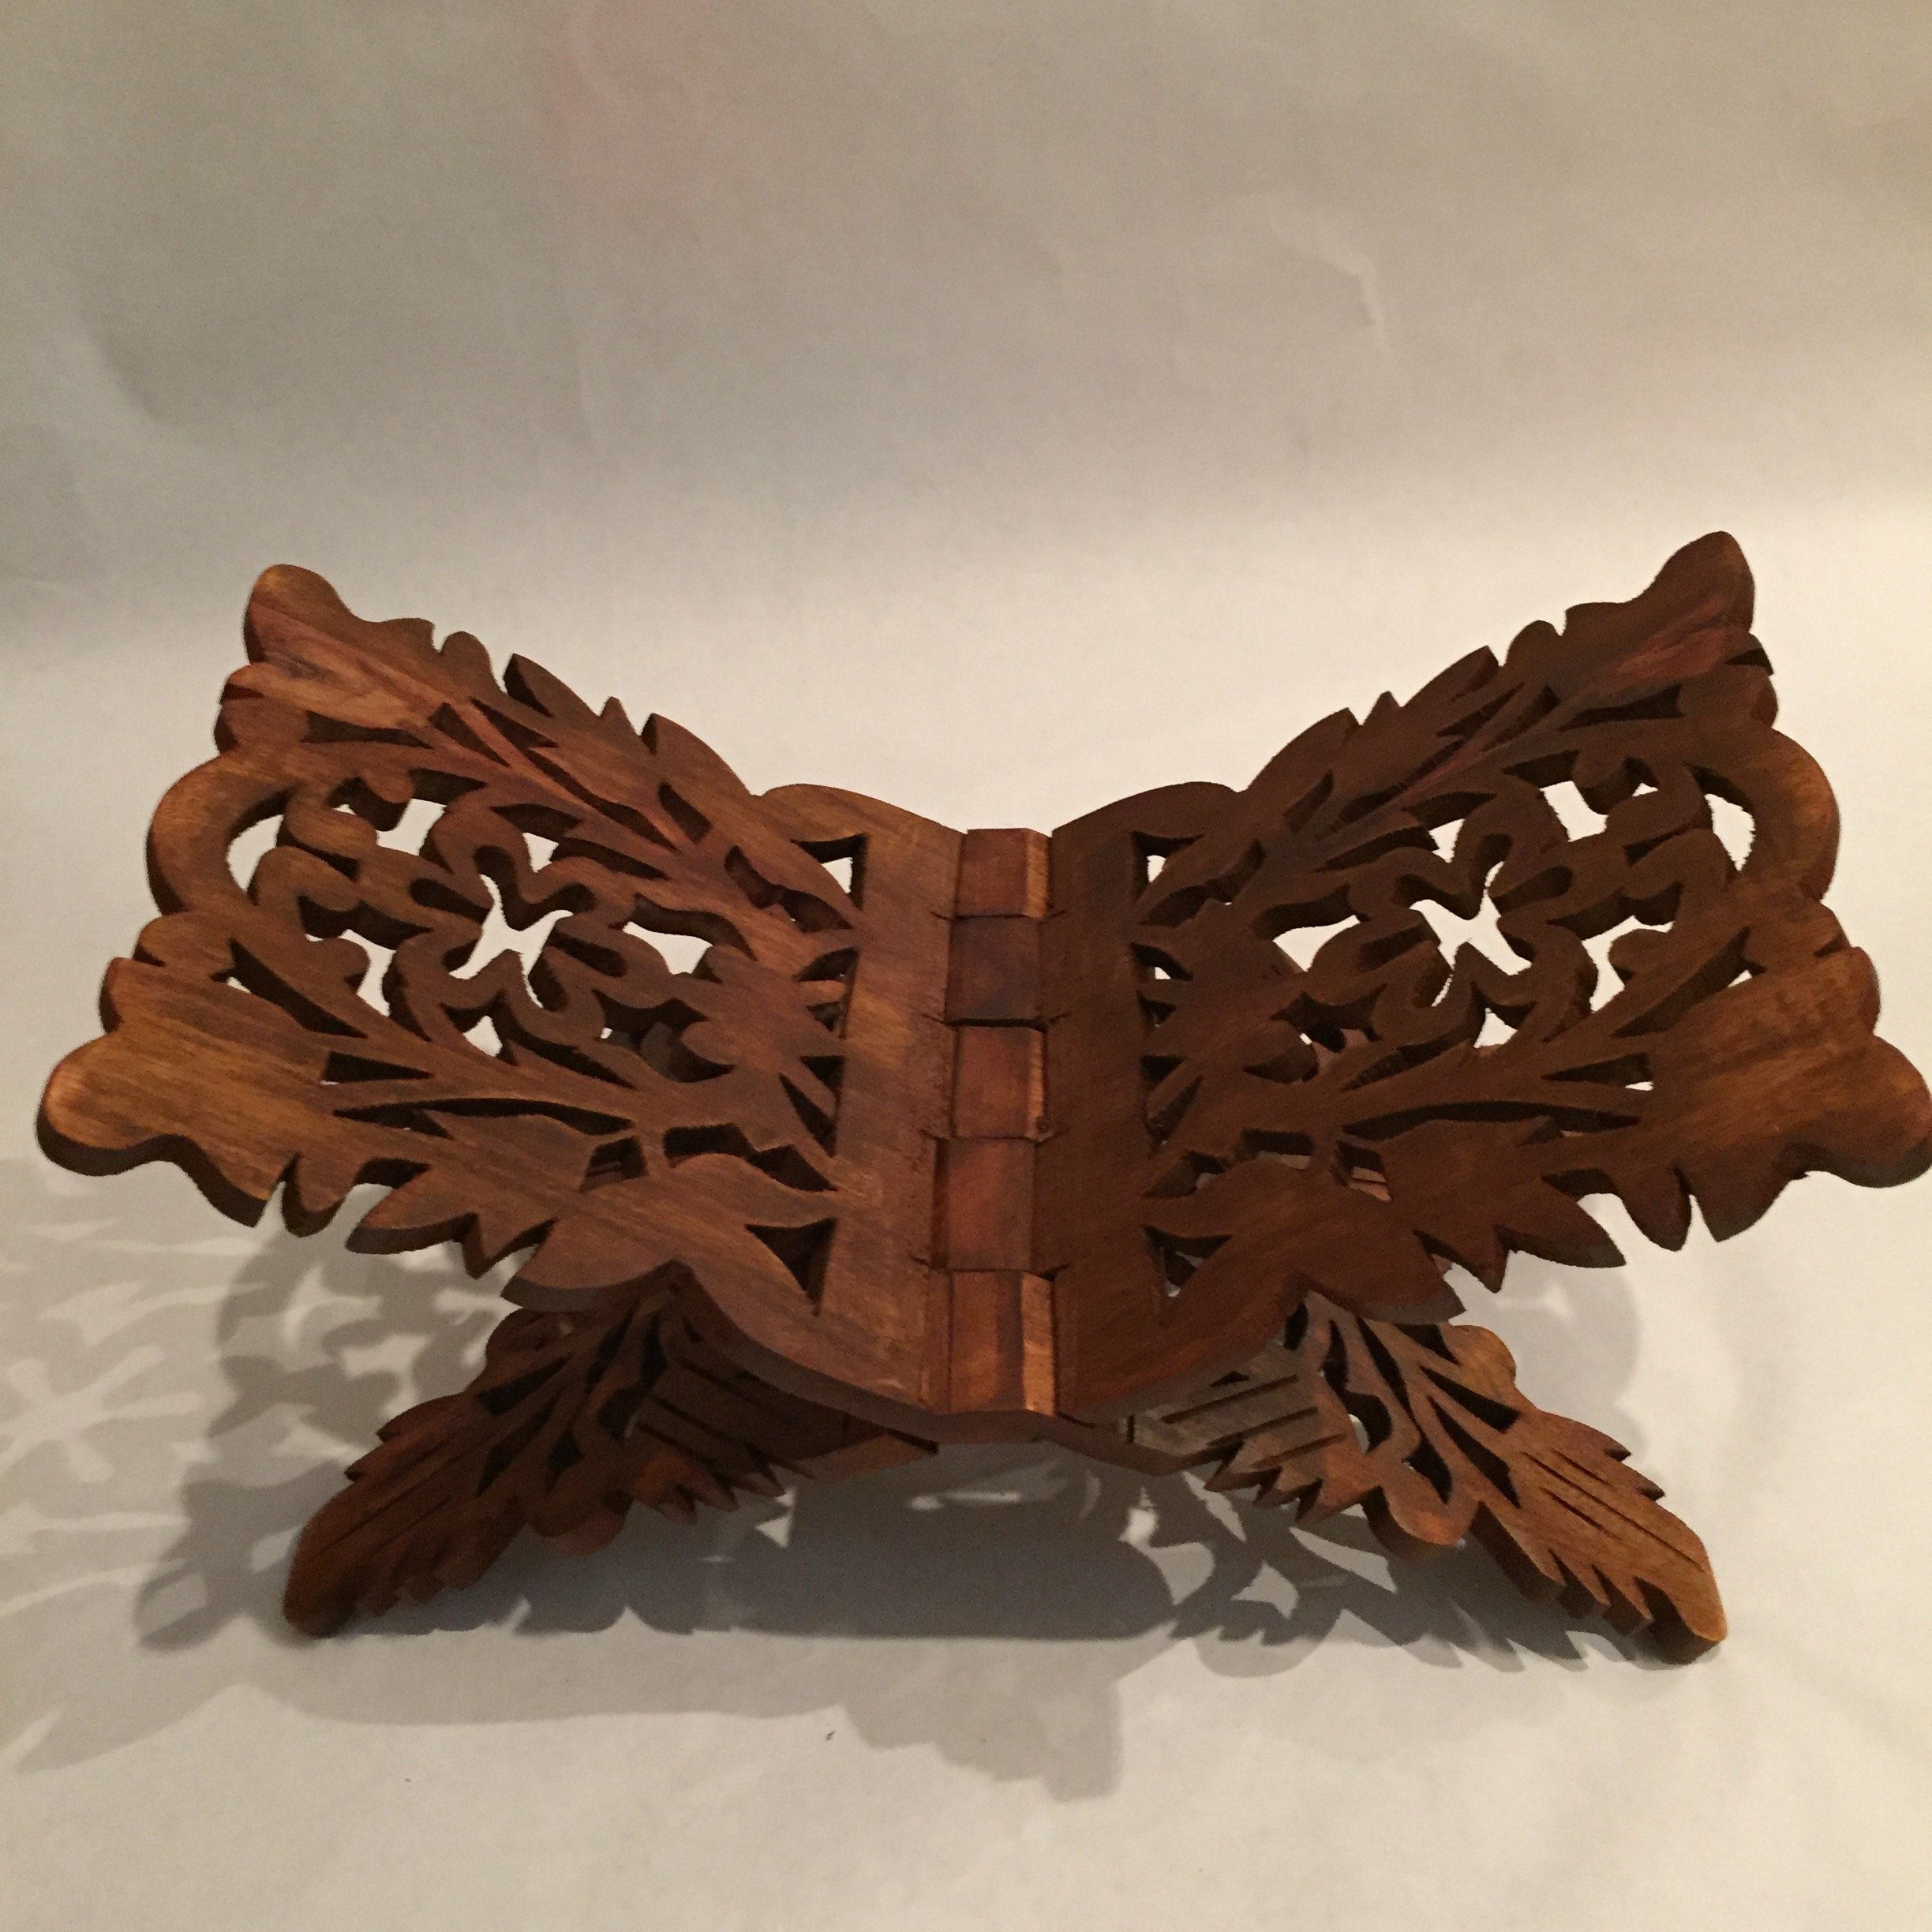 Prayer Book Holder Stand Ramadan Gift Rihal Rehal Rail Wooden Carved Gift 15.5''x7'' by Hand Made